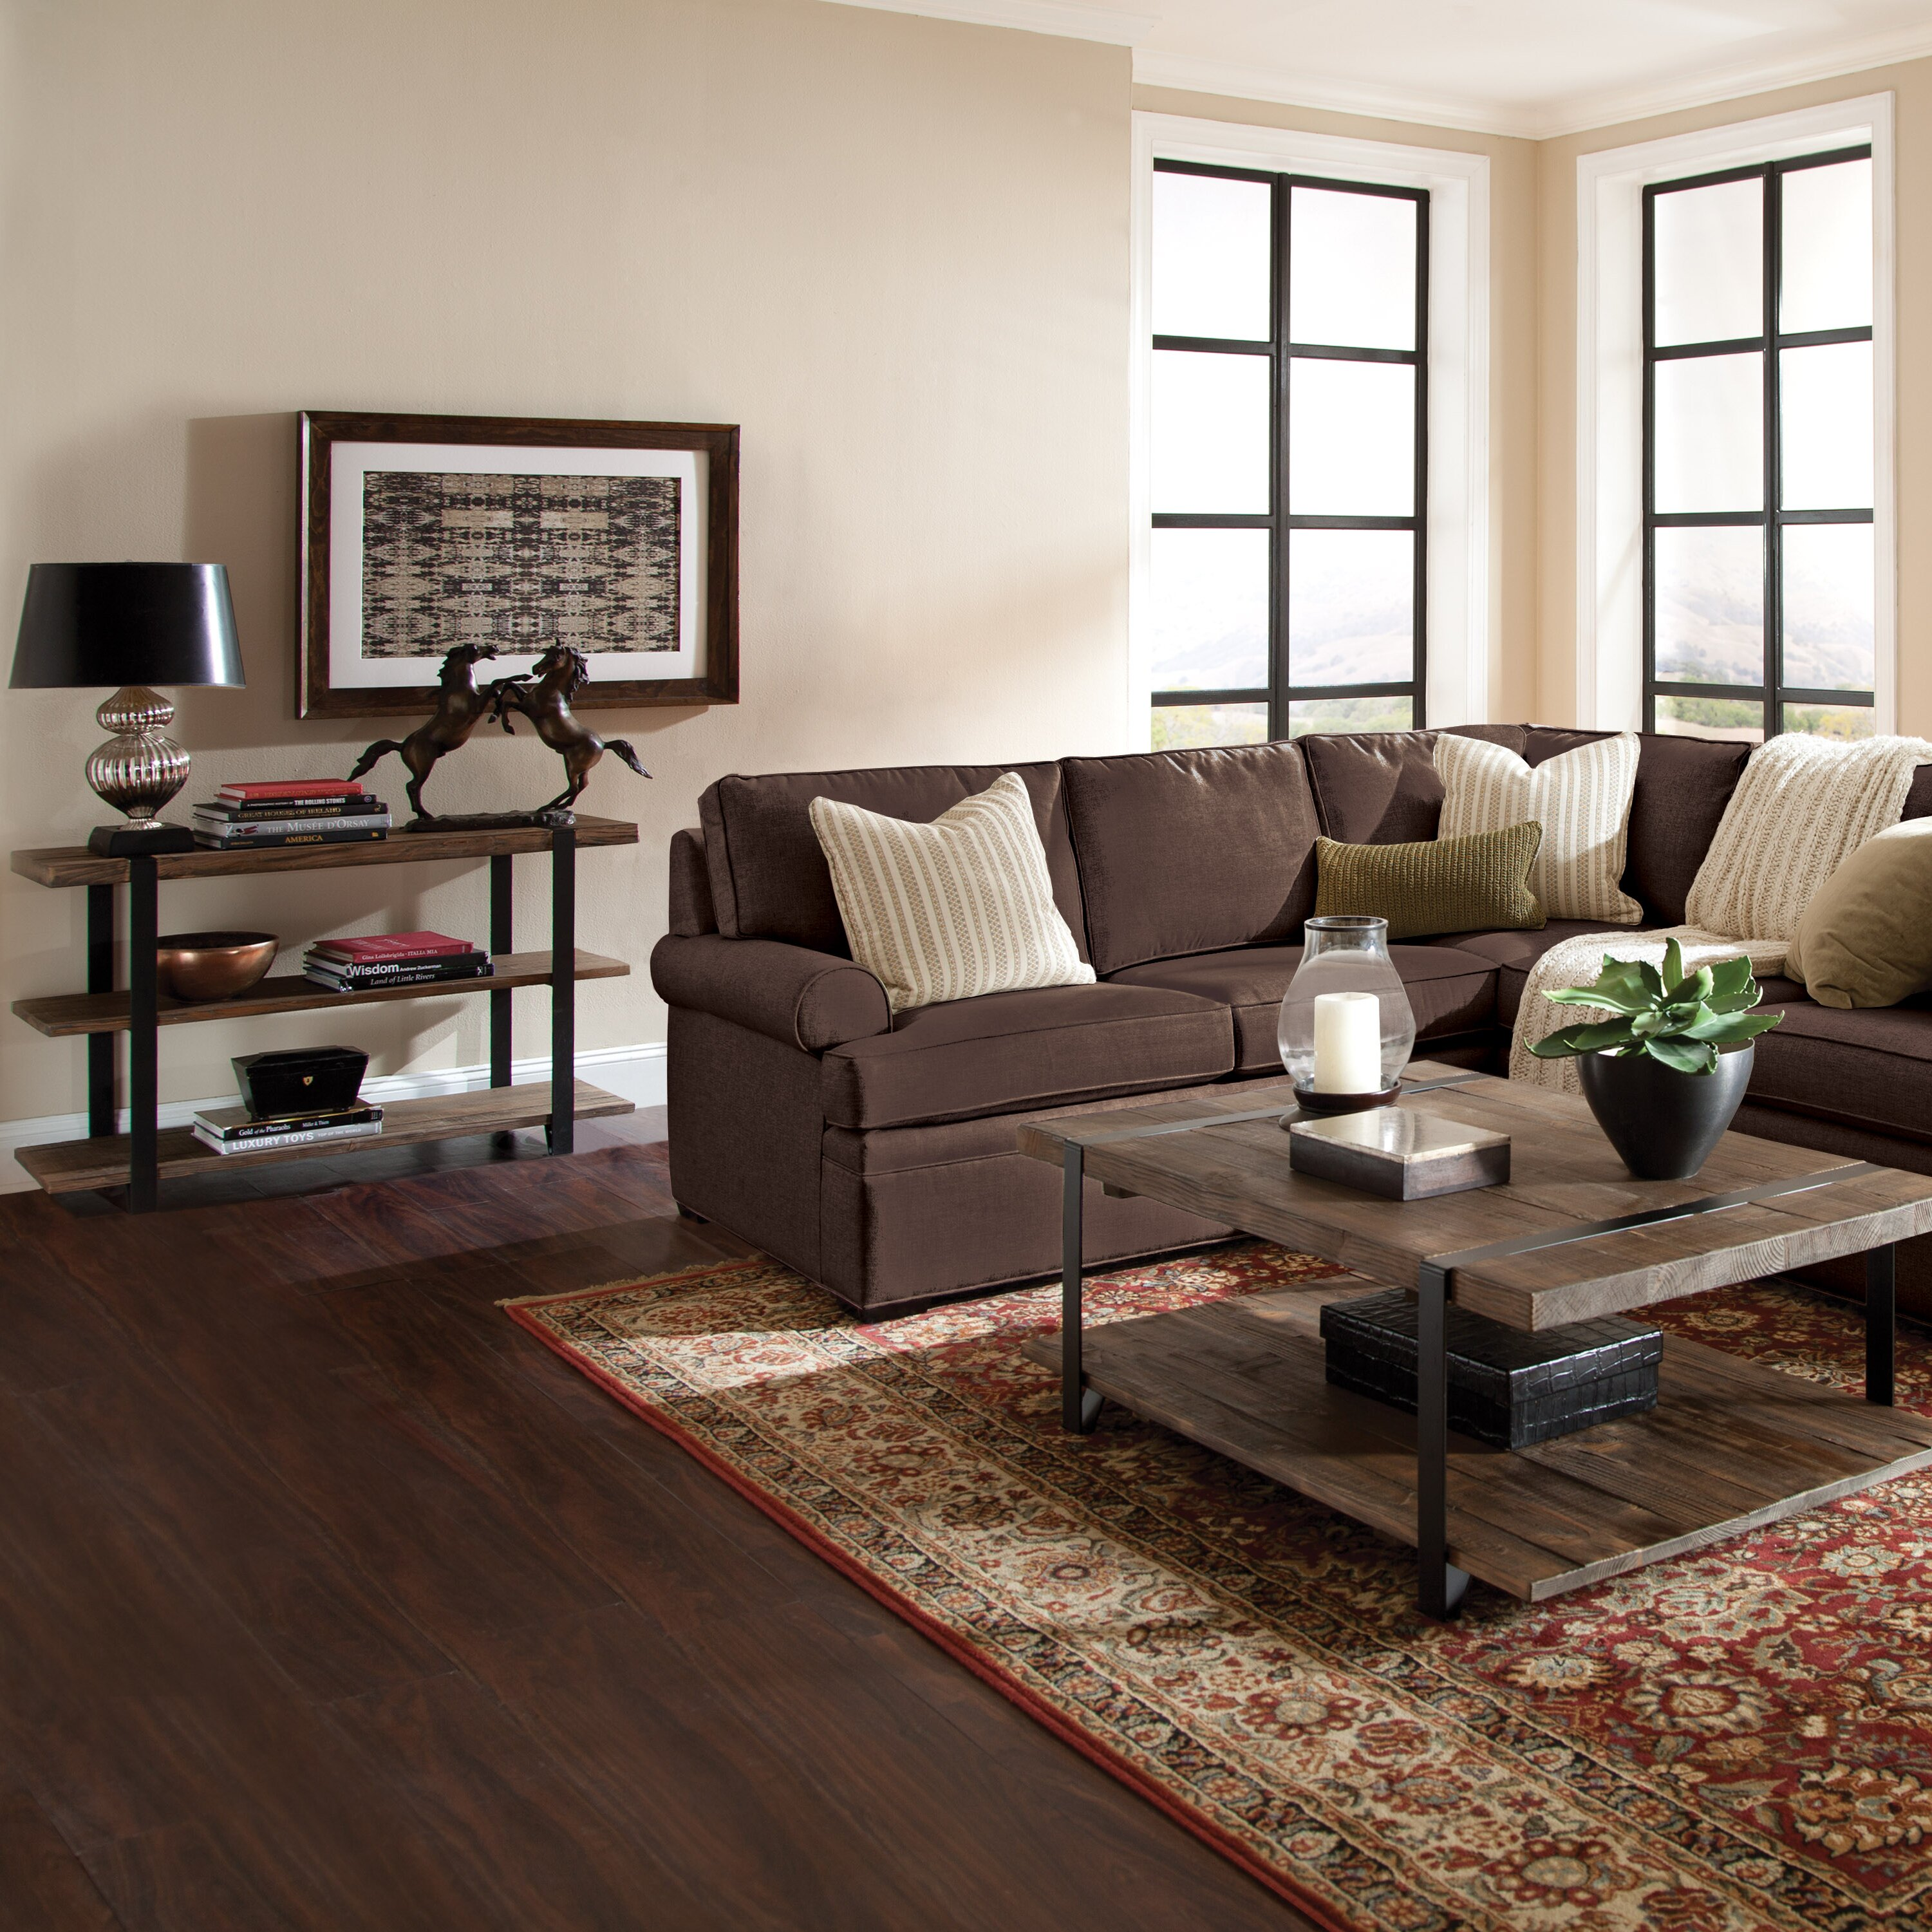 Loon peak fallon tv stand reviews for Living room table sets with tv stand